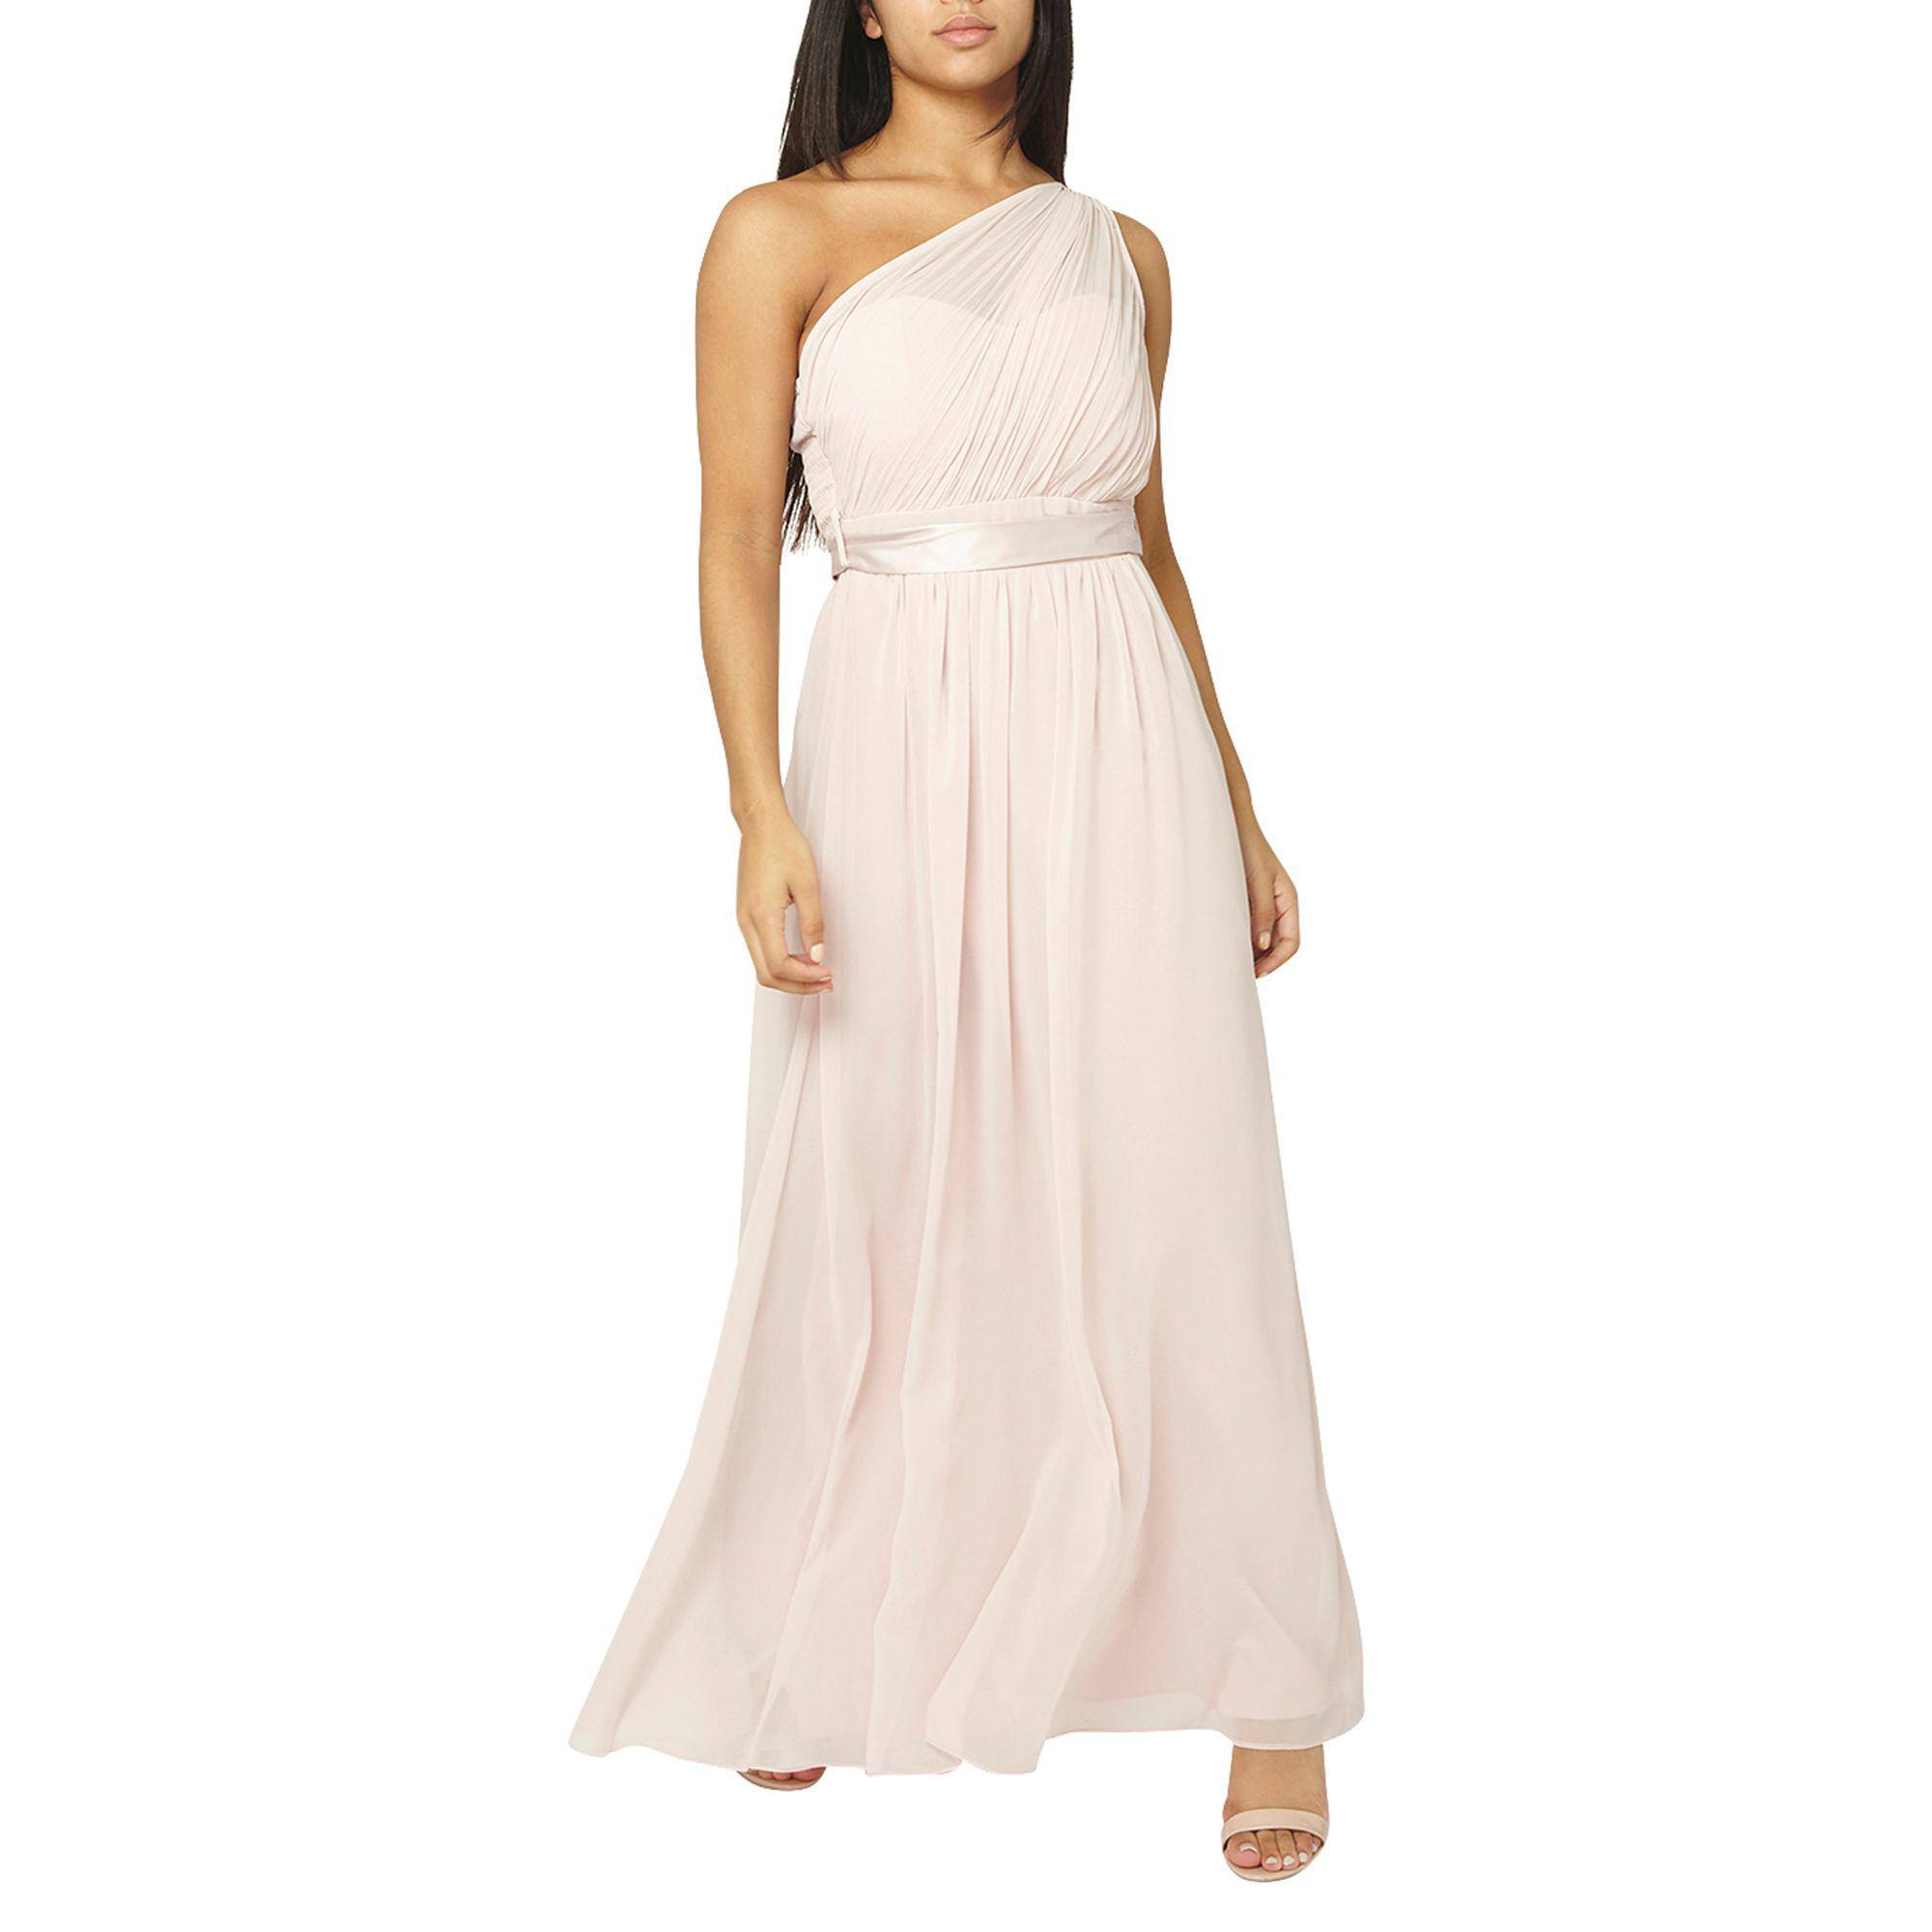 461f30bf235 Dorothy Perkins Showcase Blush Sadie Maxi Dress in Pink - Lyst